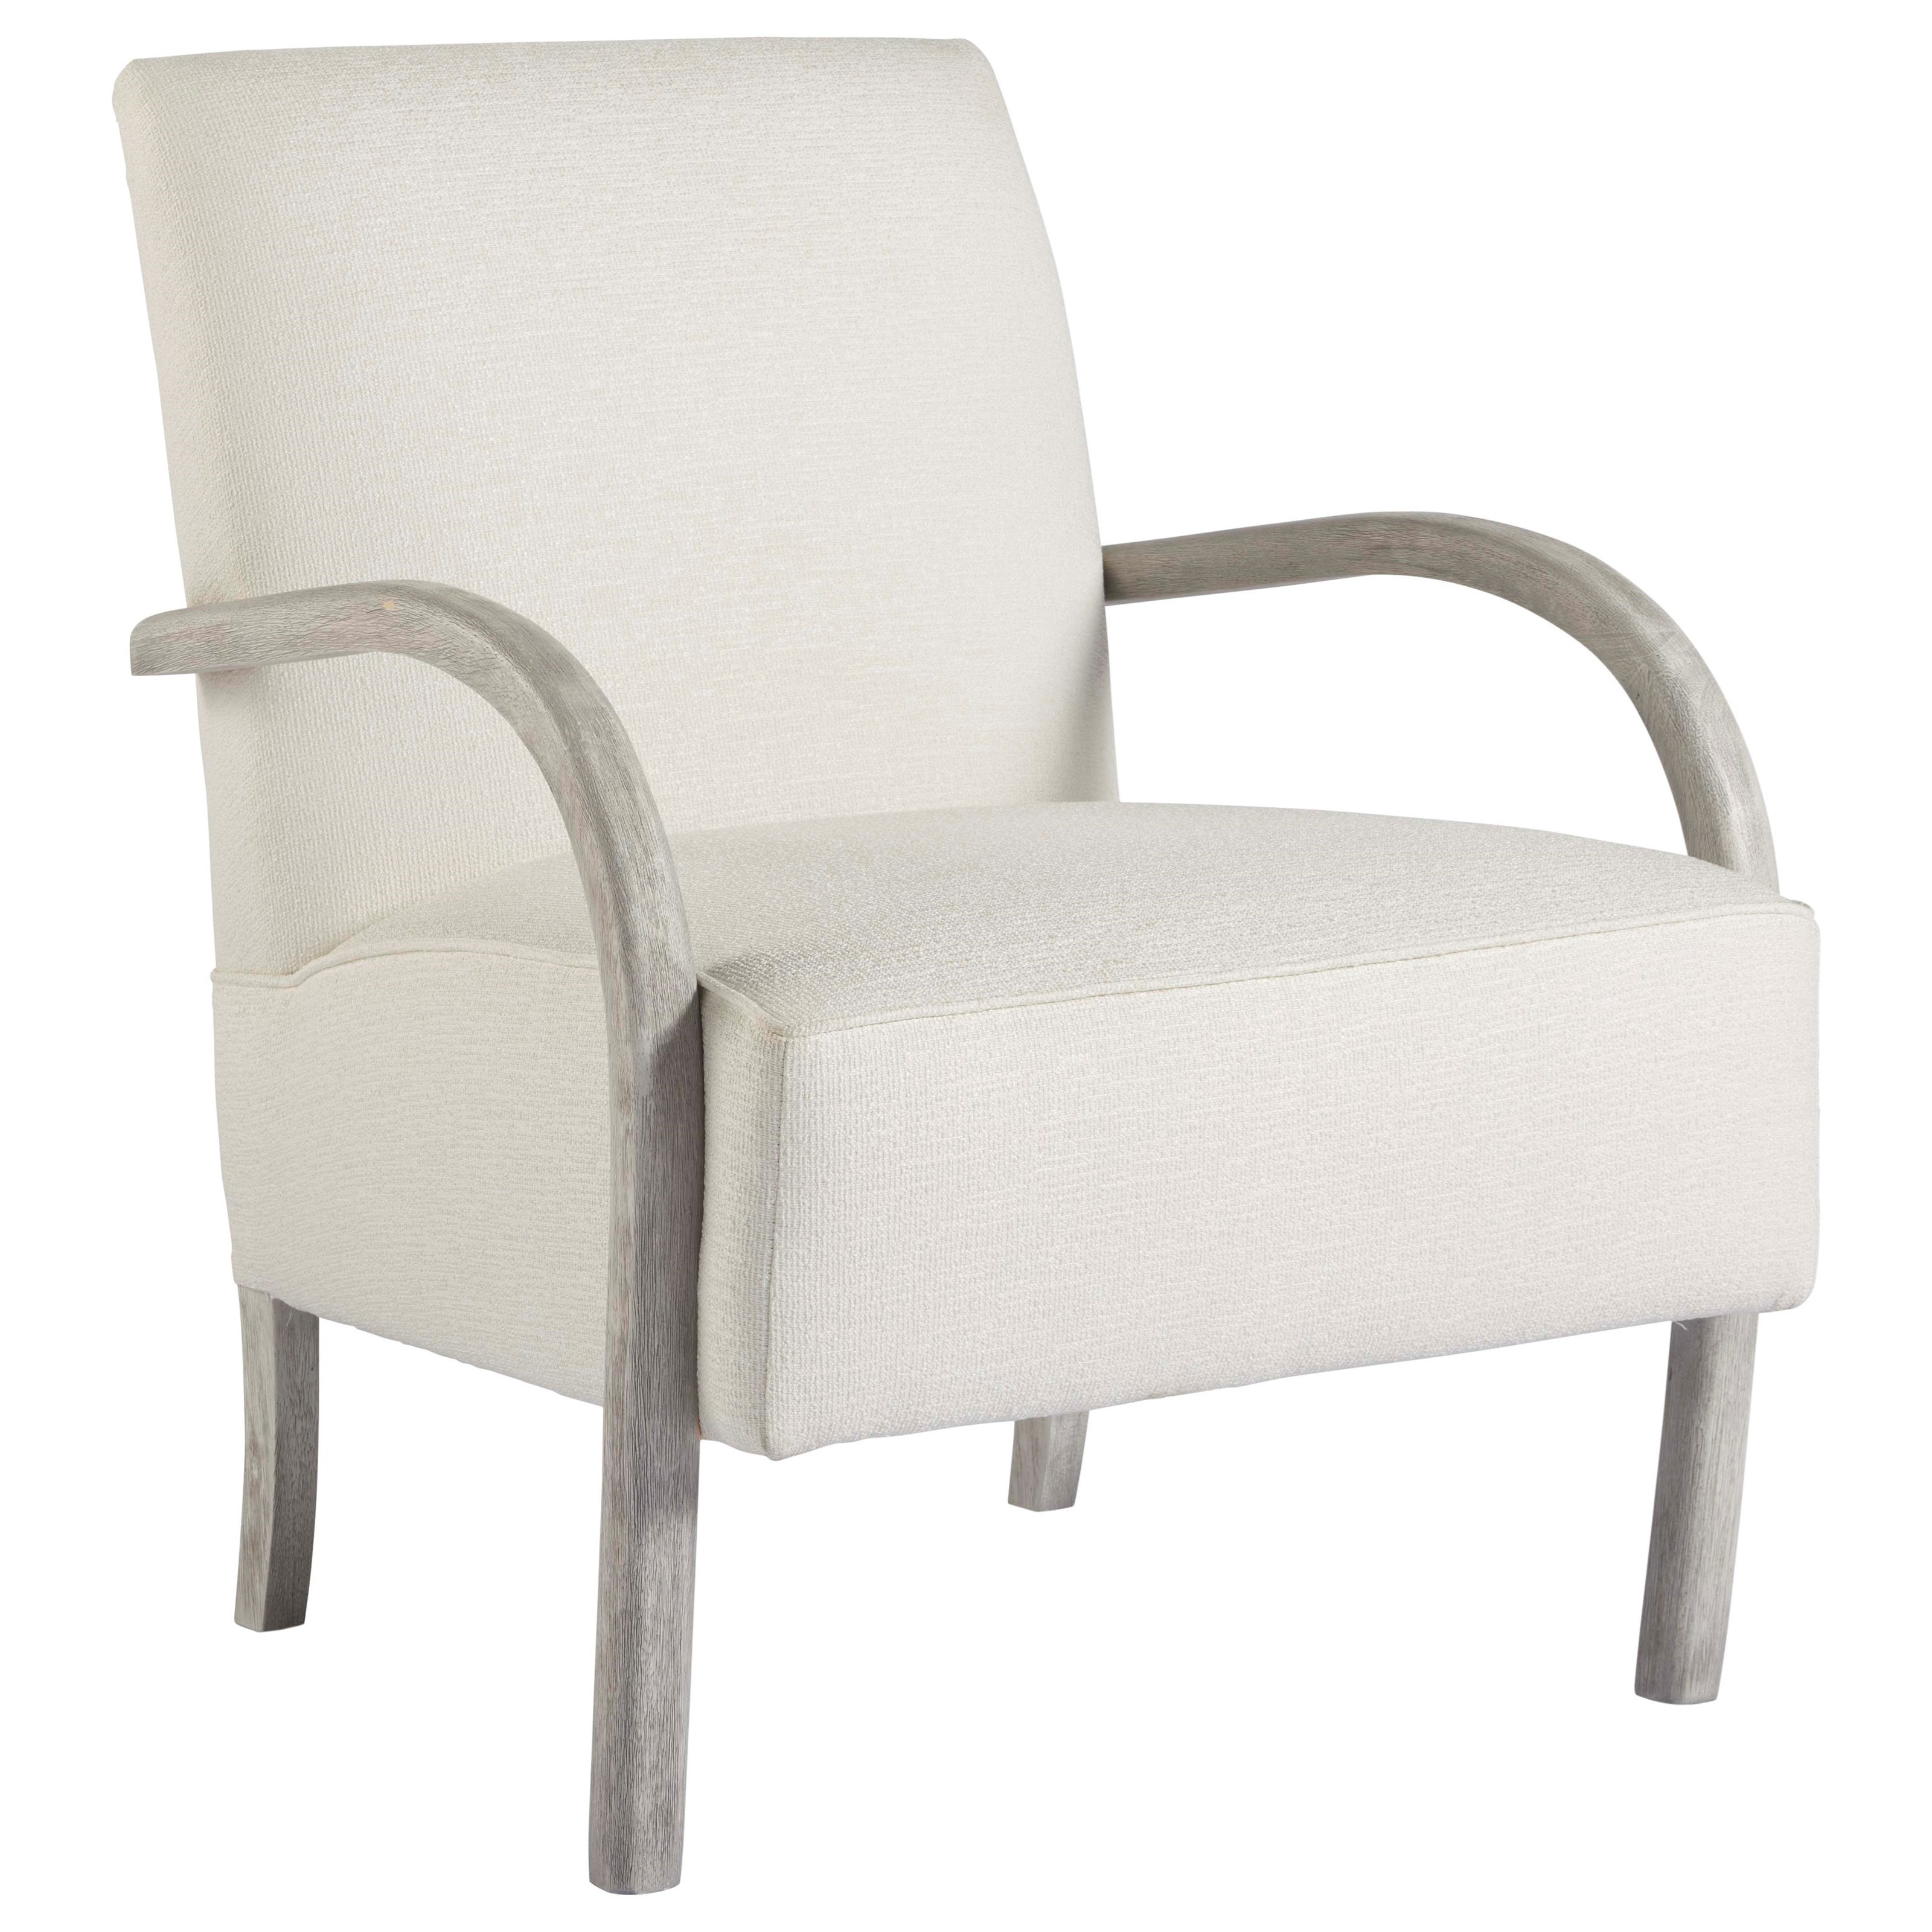 Coastal Living Home - Escape Accent Chair by Universal at Red Knot